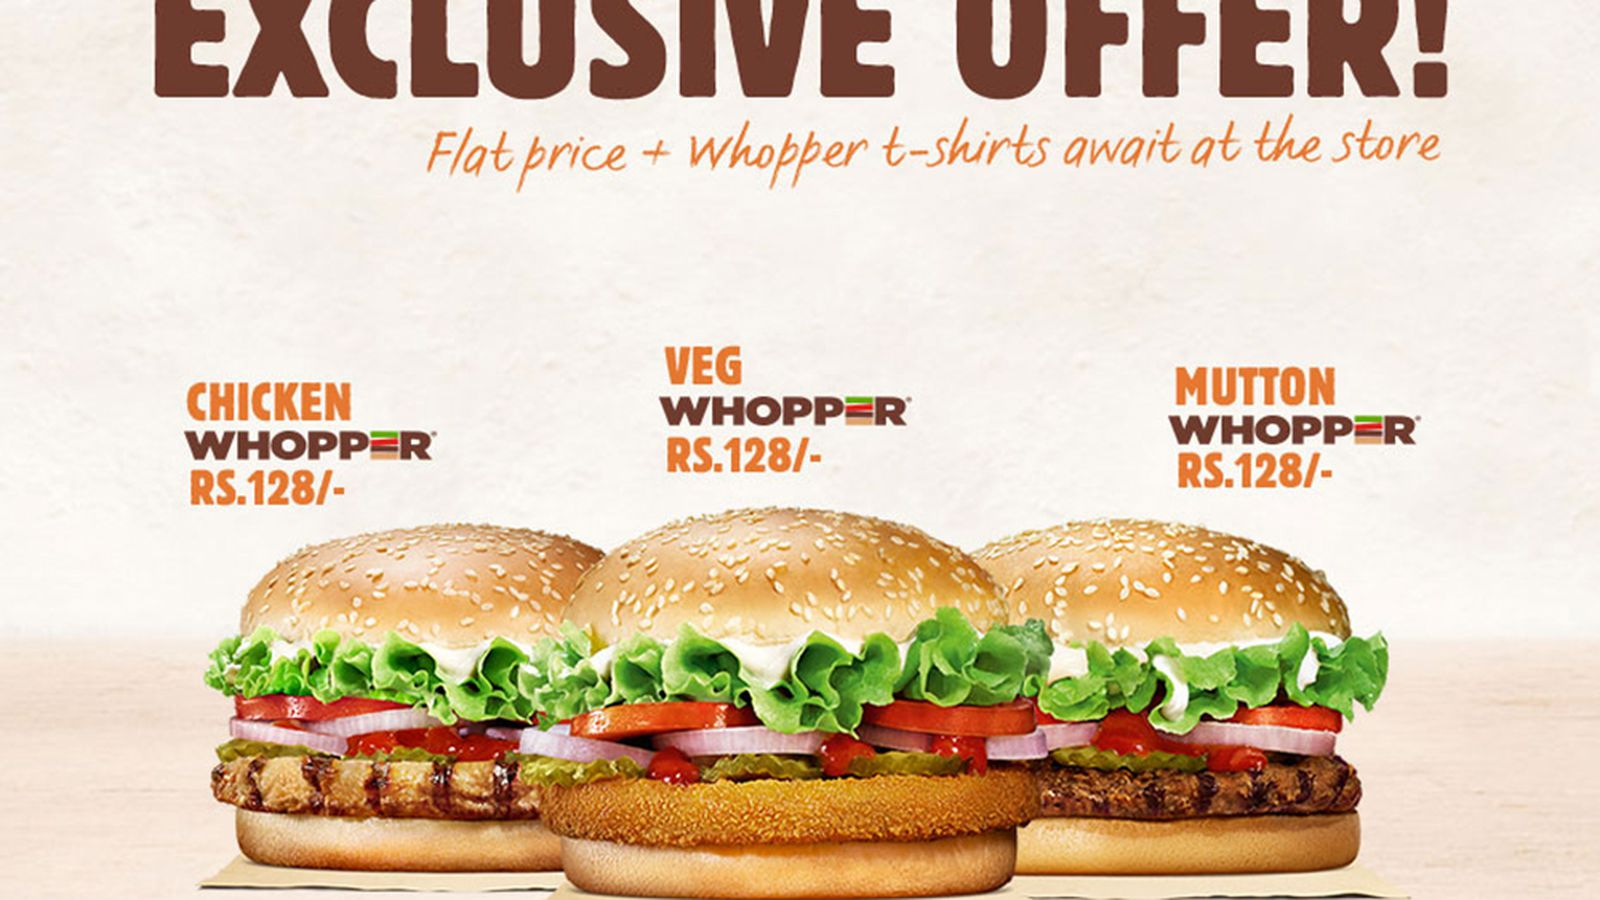 Burger King India Is Pre-Selling Burgers on eBay - Eater